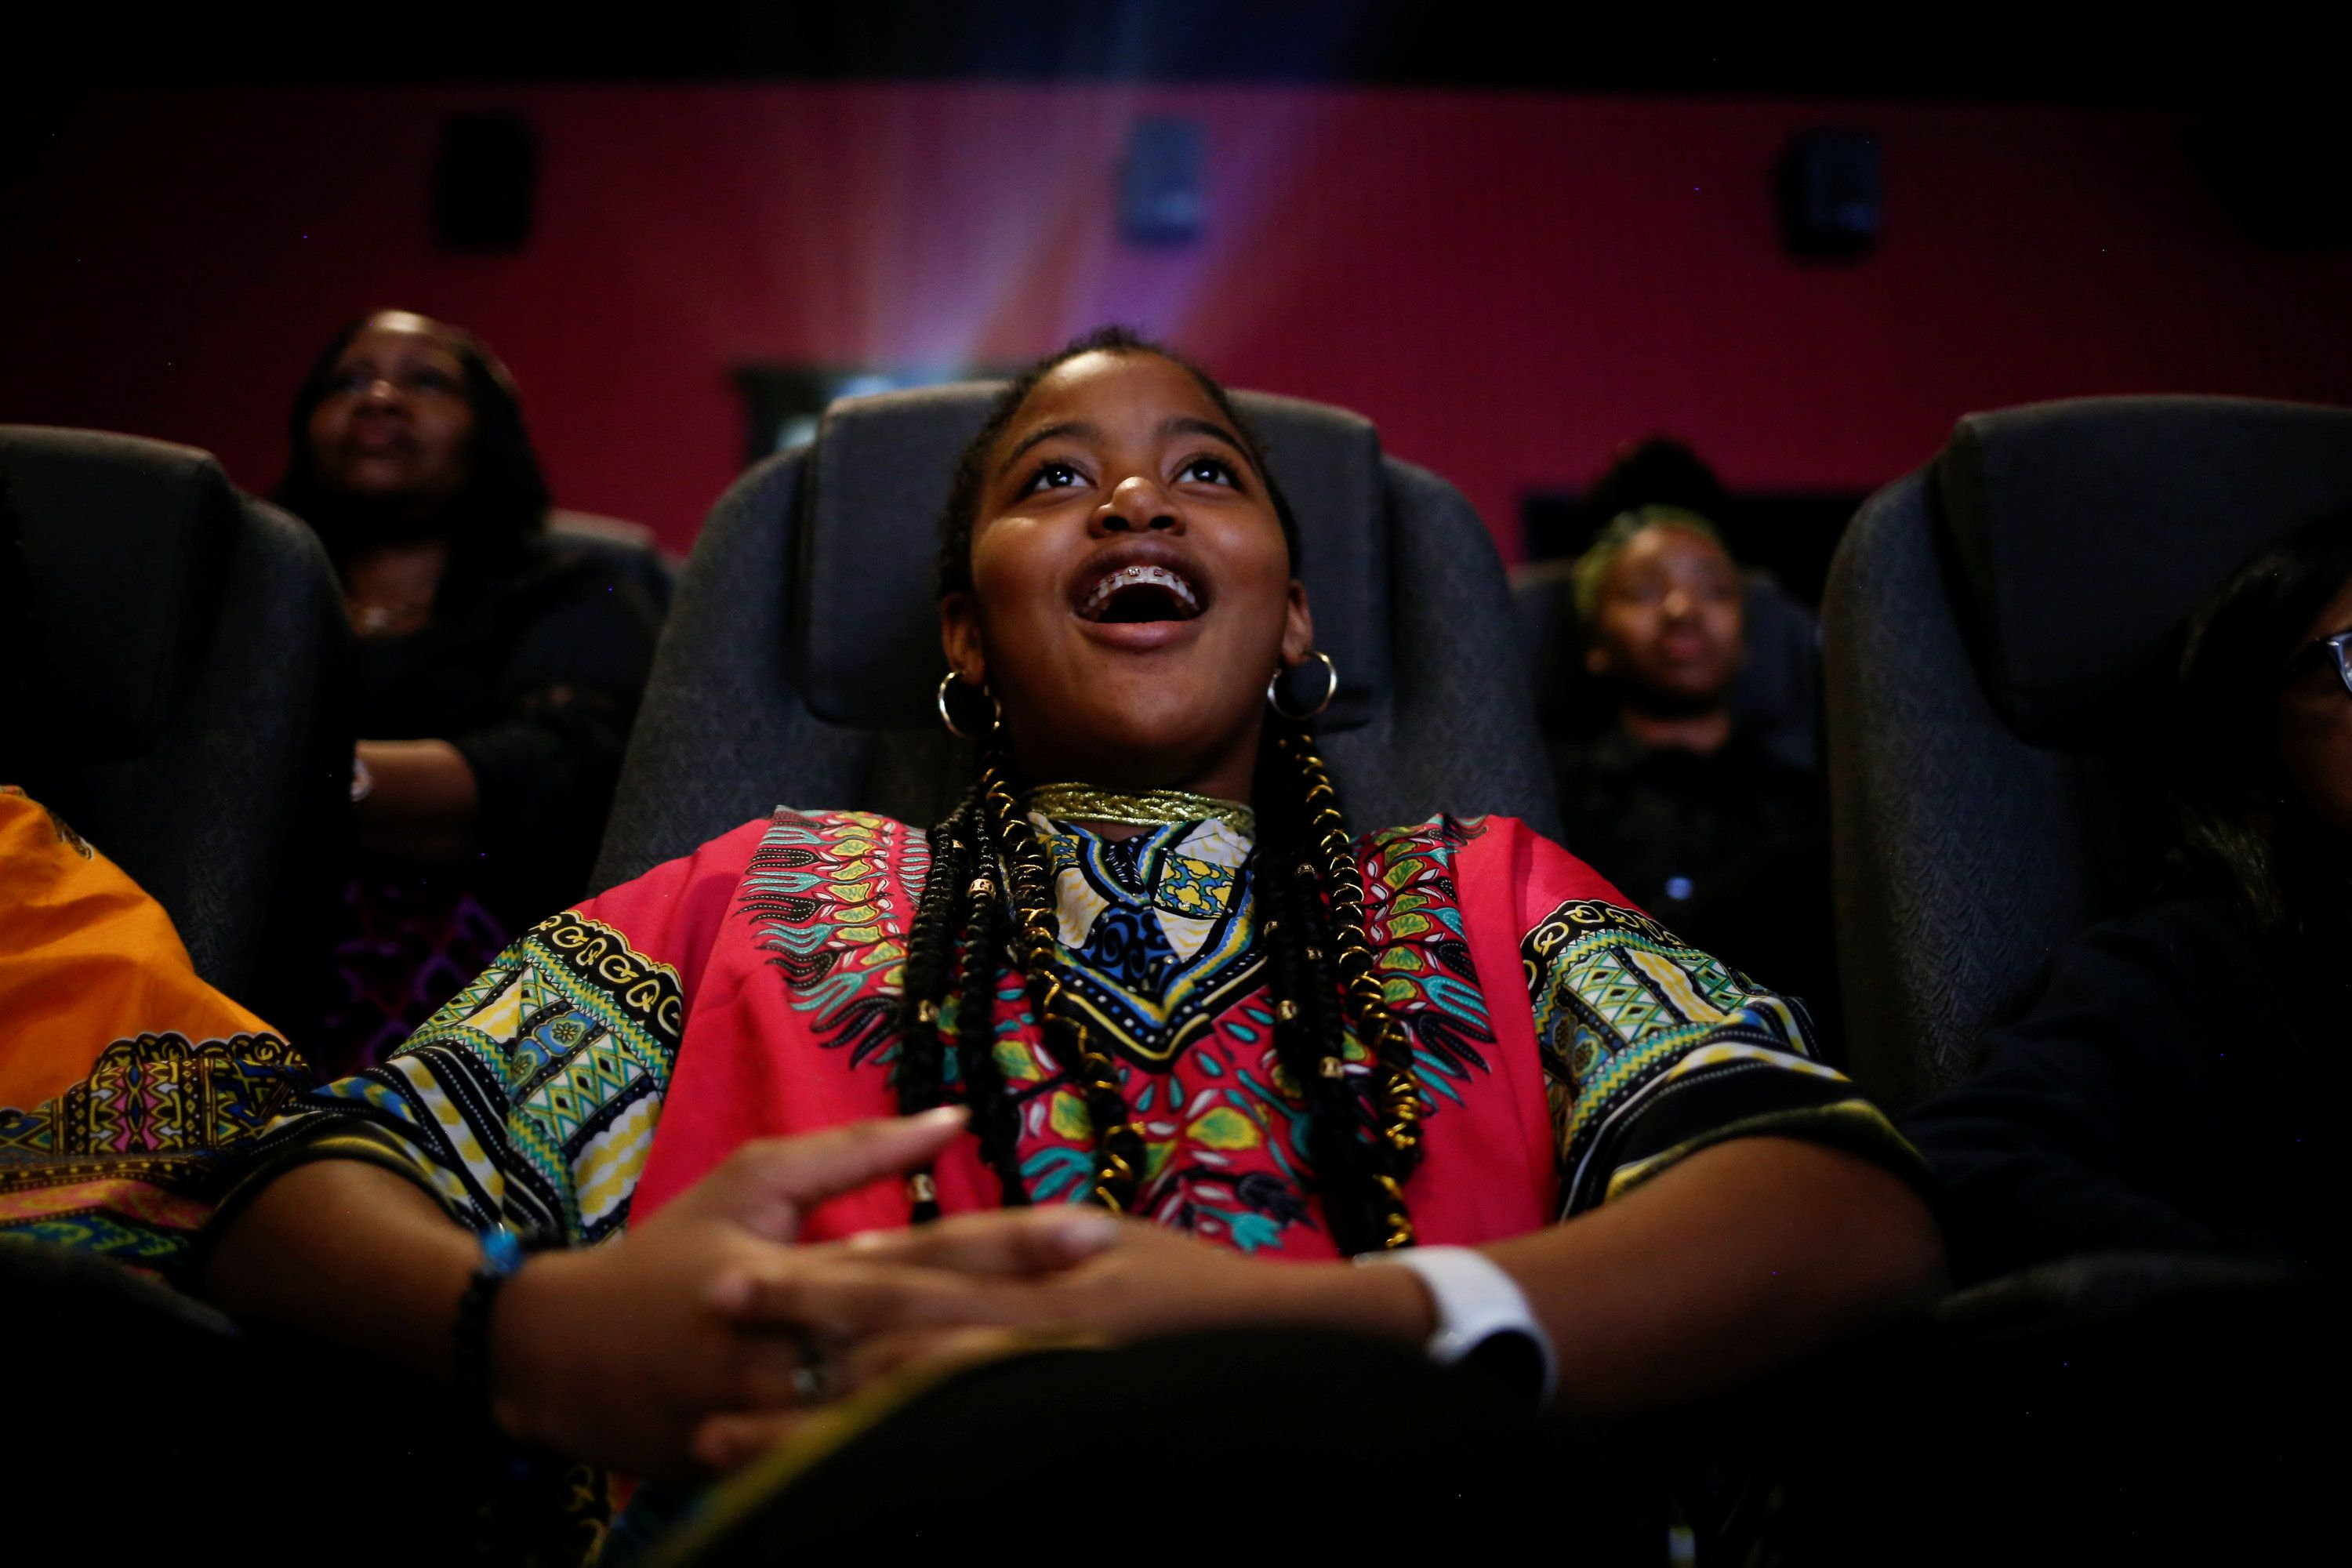 """Ron Clark Academy 6th grader De Ja Little, 12, joins classmates in watching the film """"Black Panther"""" at Atlantic Station theaters in Atlanta, Georgia, U.S., February 21, 2018. REUTERS/Chris Aluka Berry"""